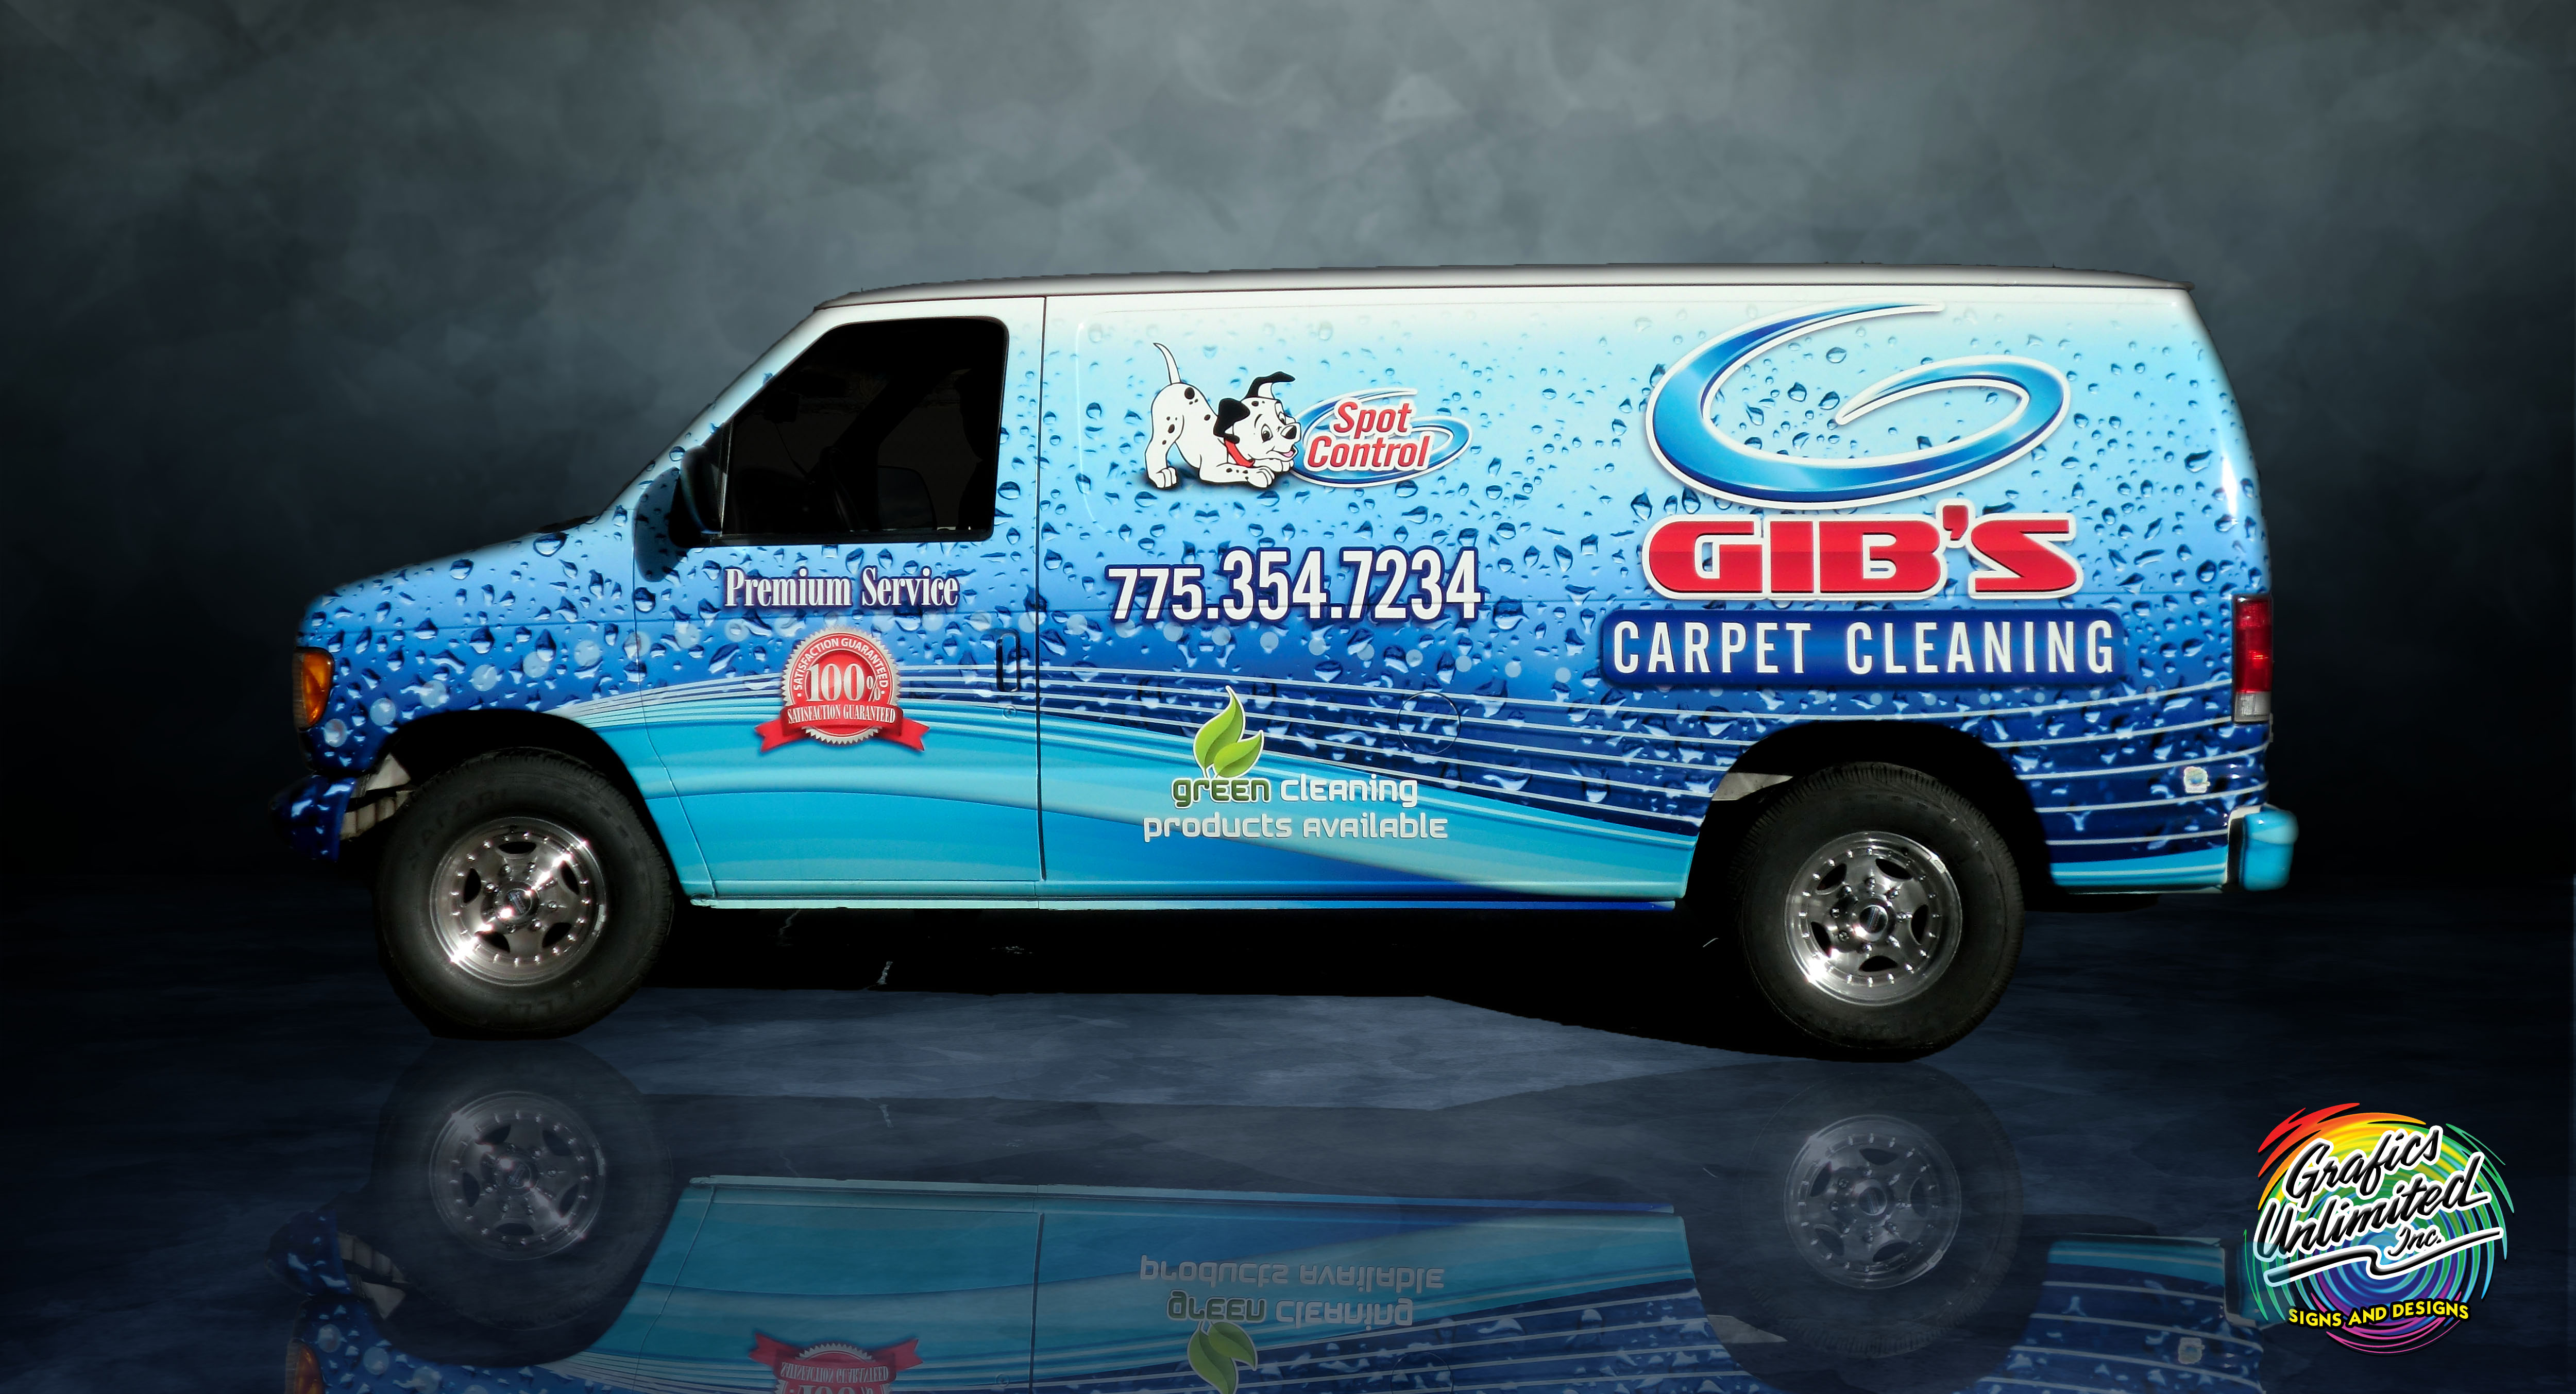 vehicle wrap image of van with wrap advertisement